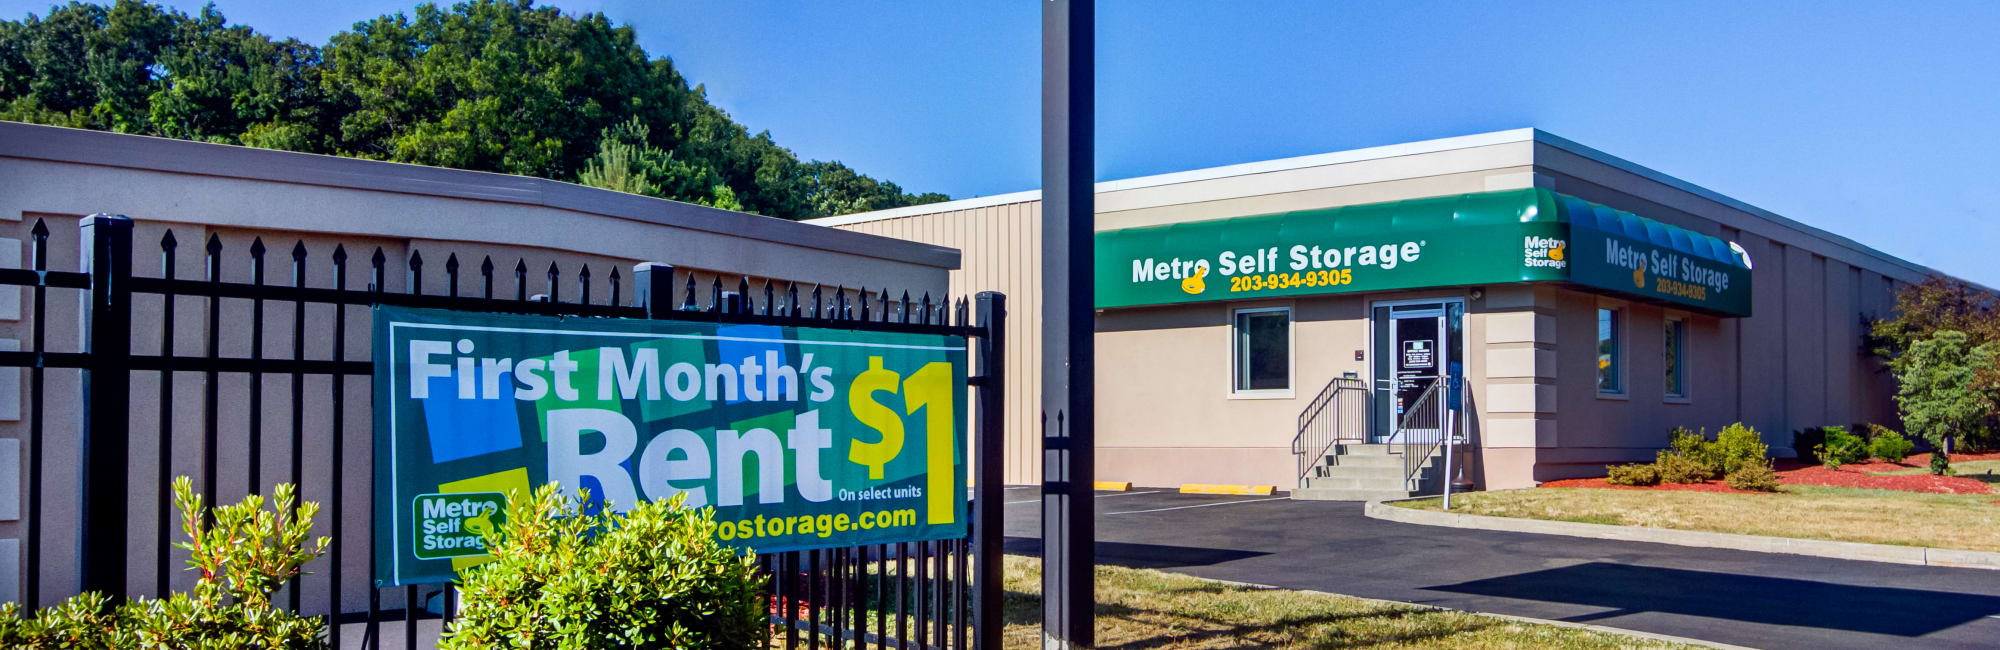 Metro Self Storage In West Haven, CT